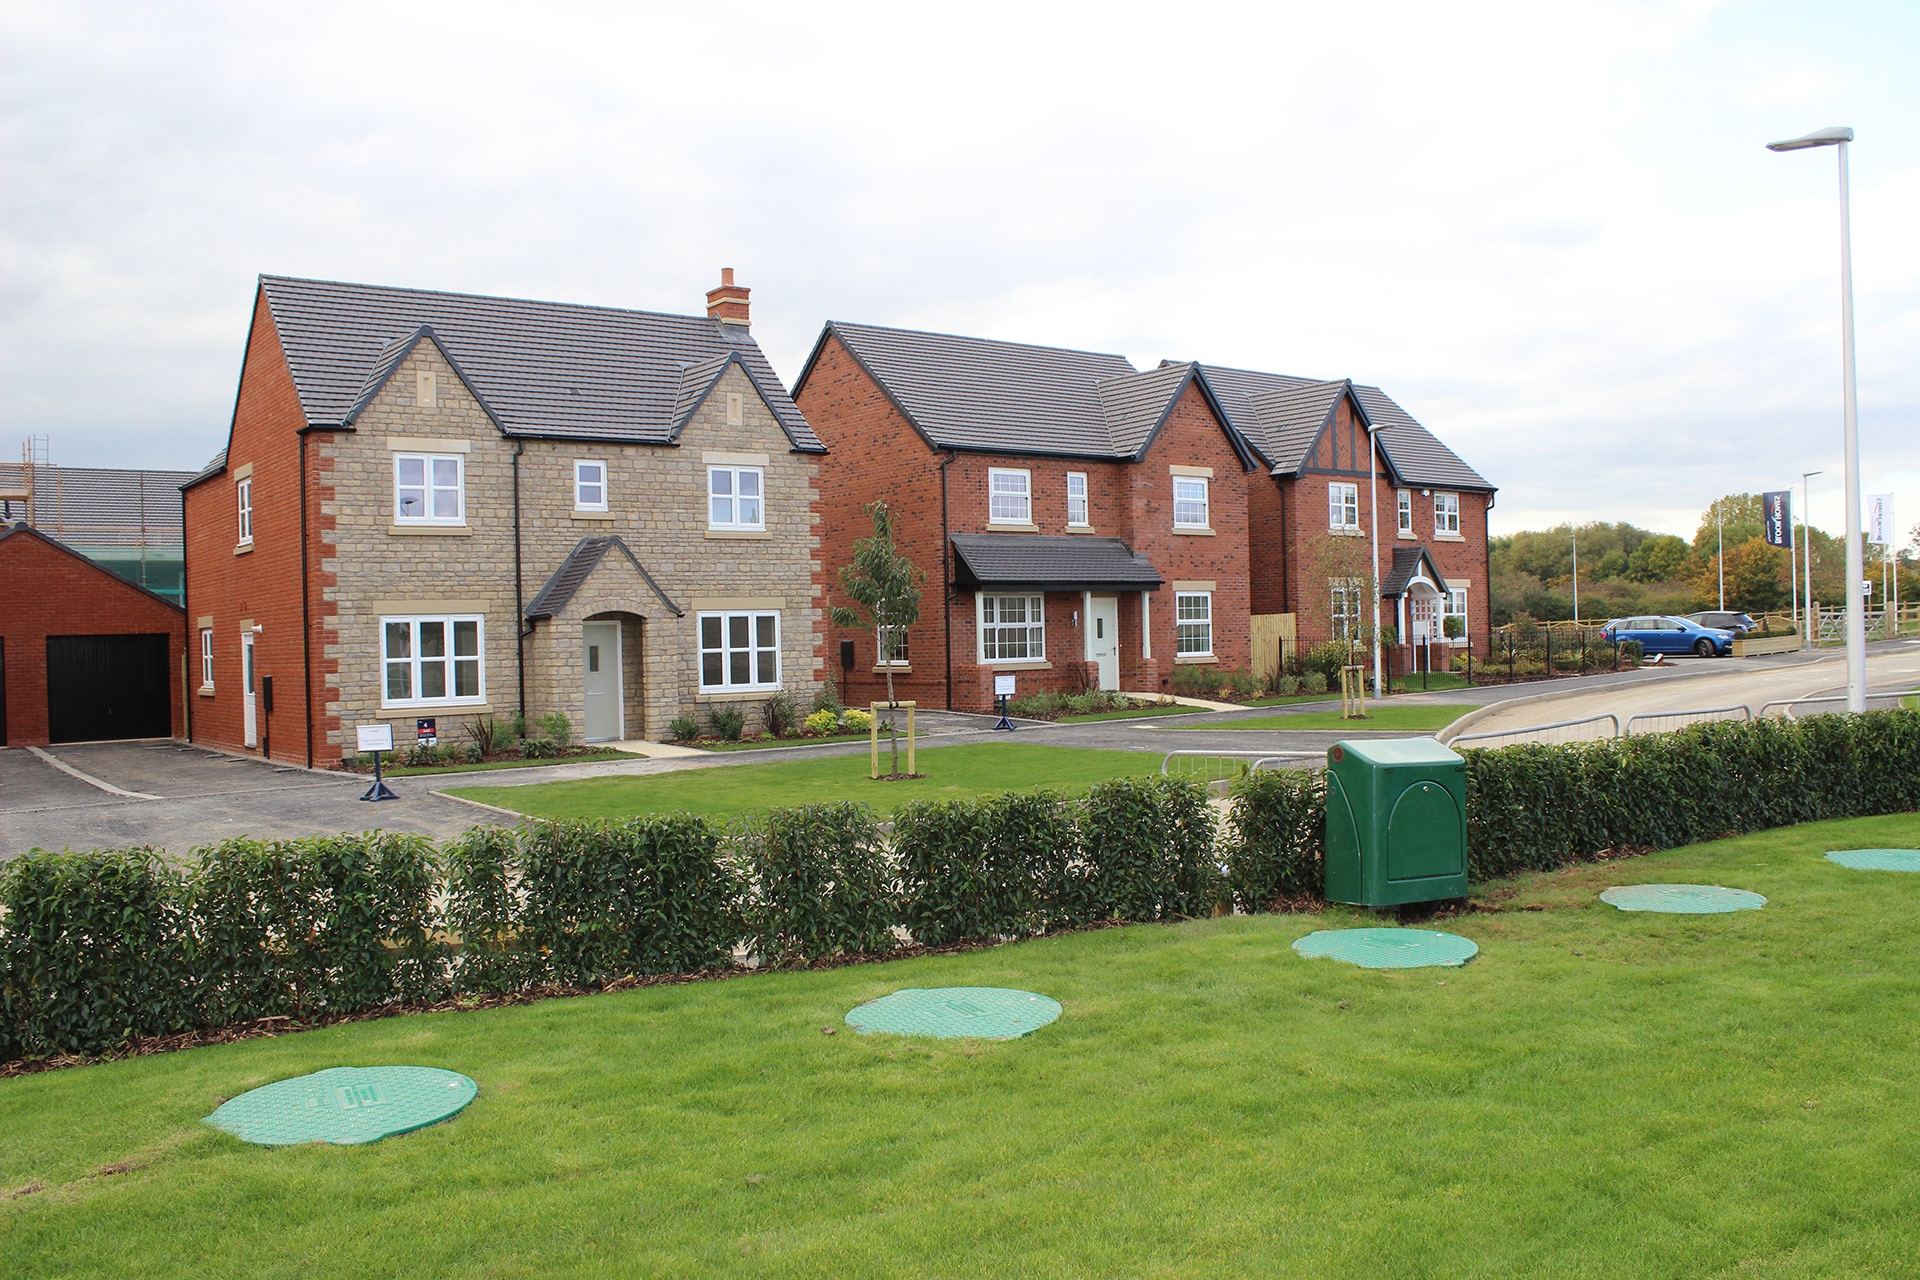 Five LPG underground tank covers in front of three large detached houses